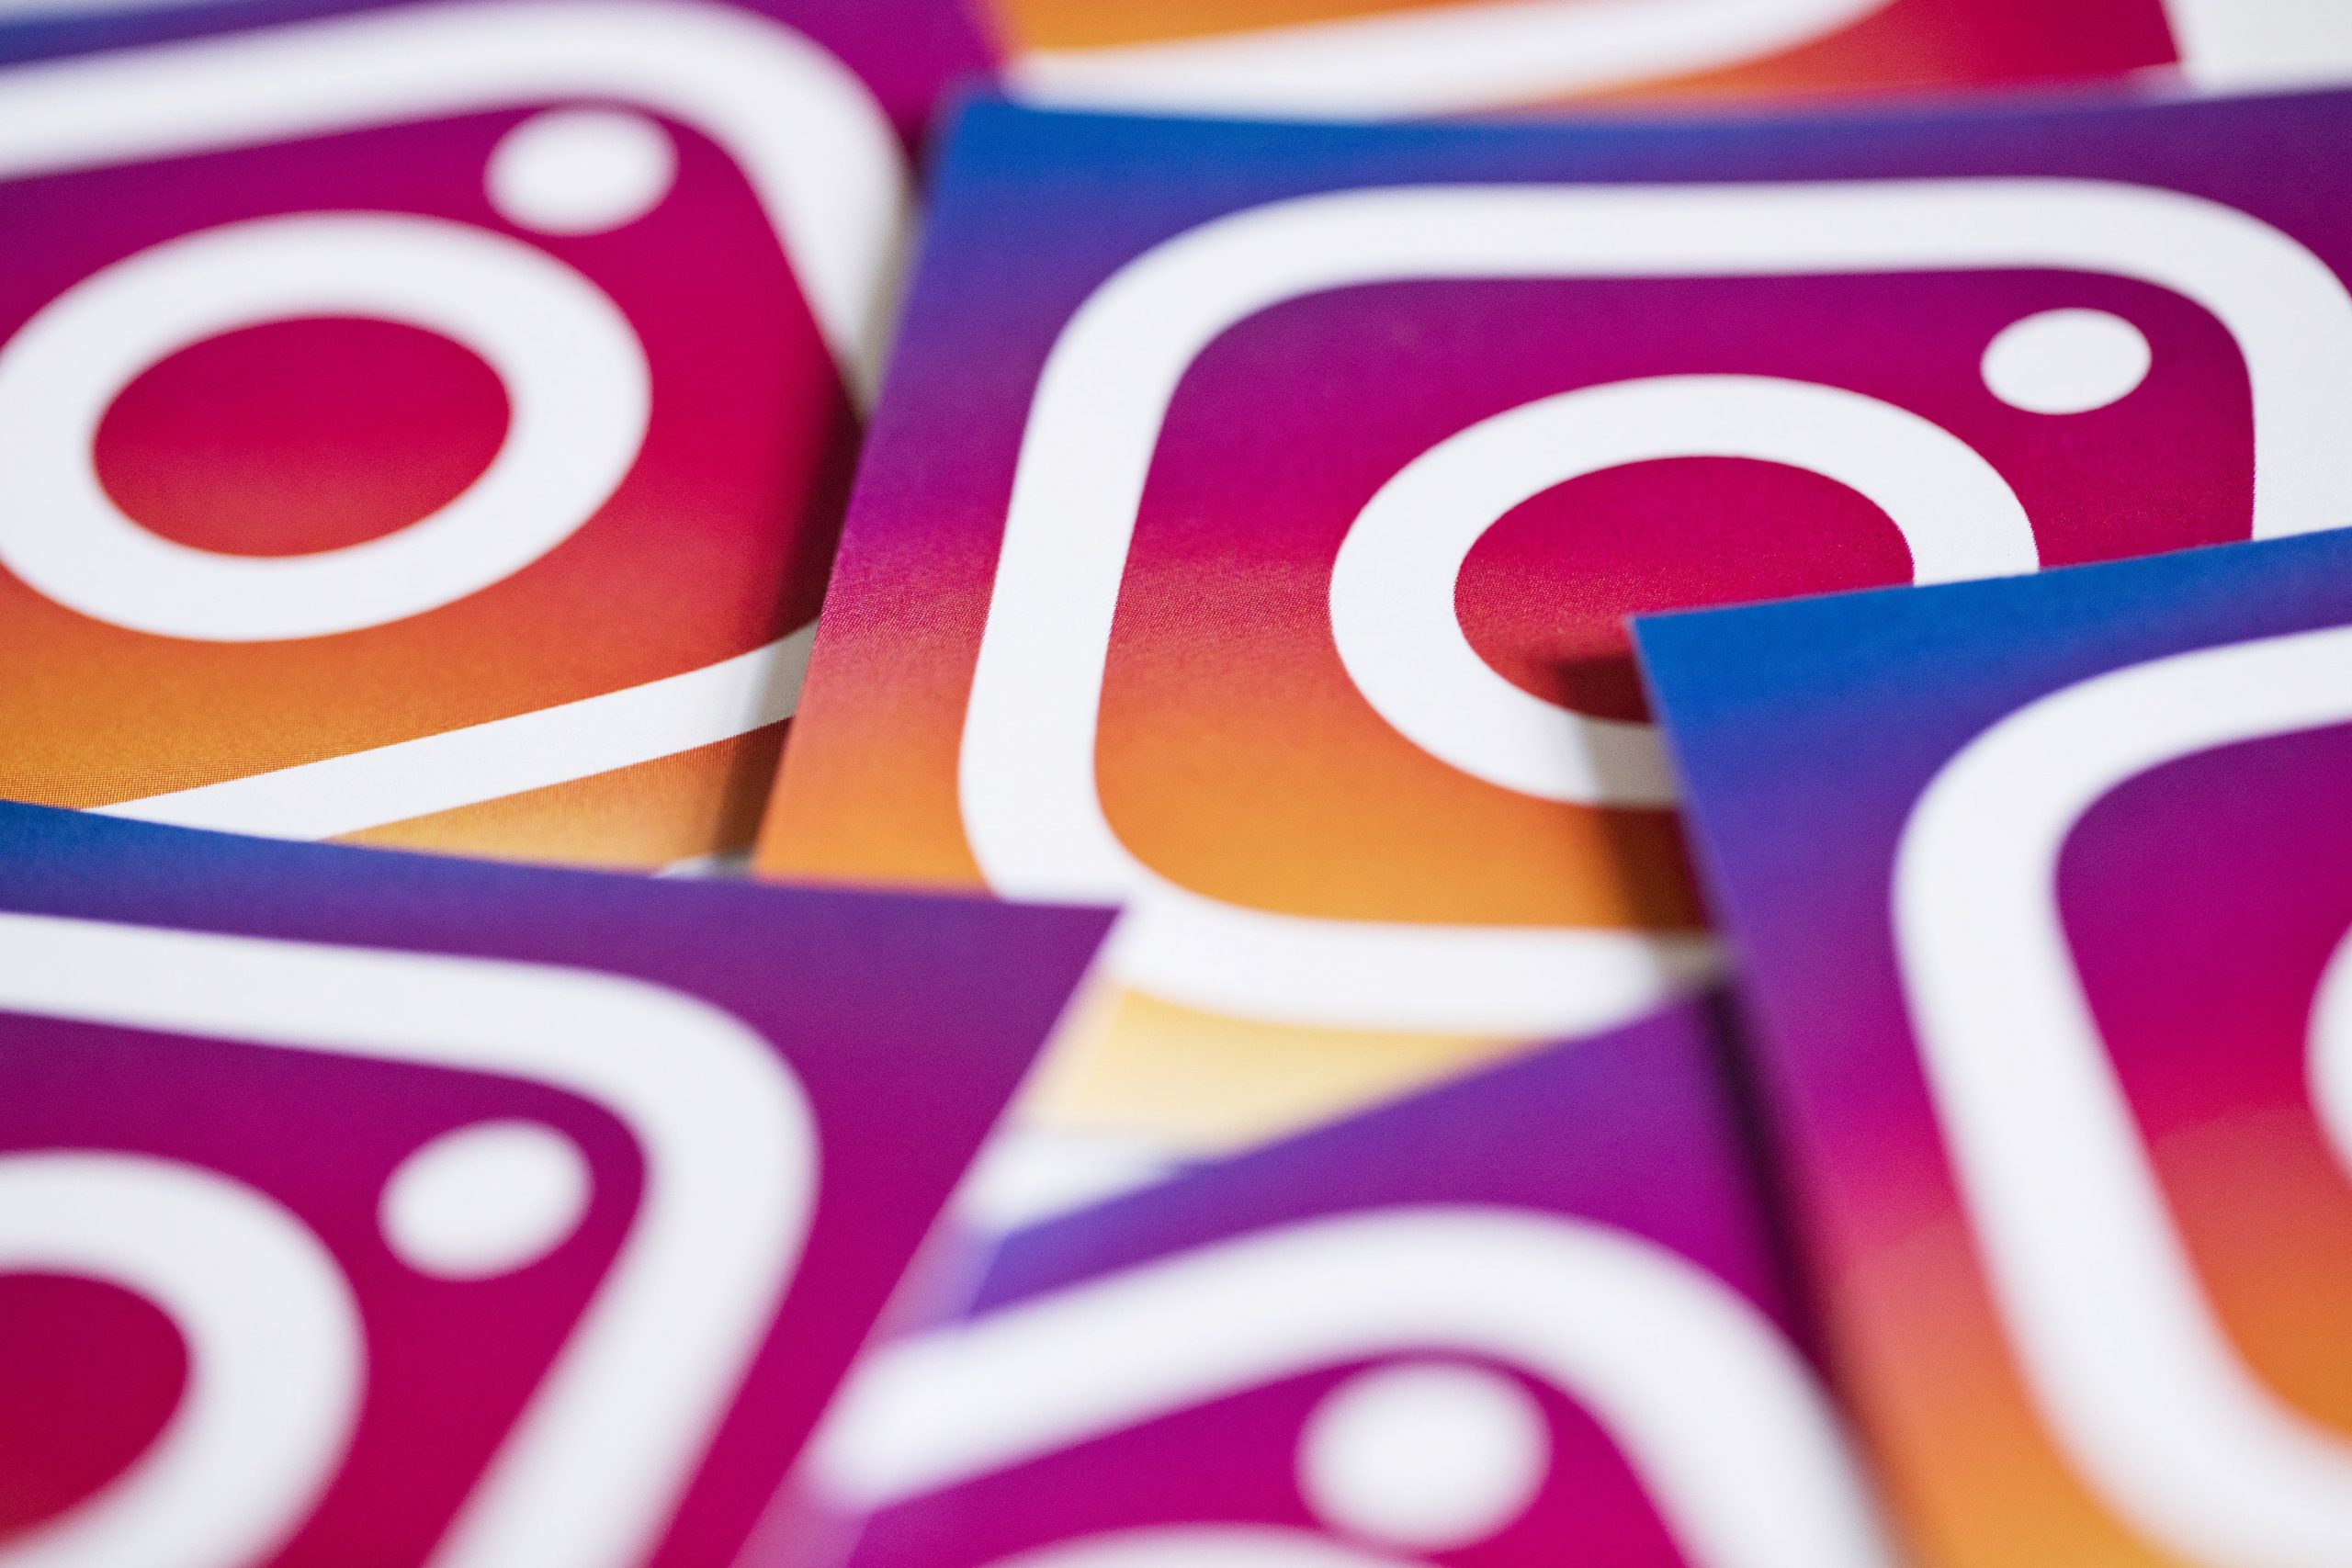 Why Use Instagram to Market Your Business?